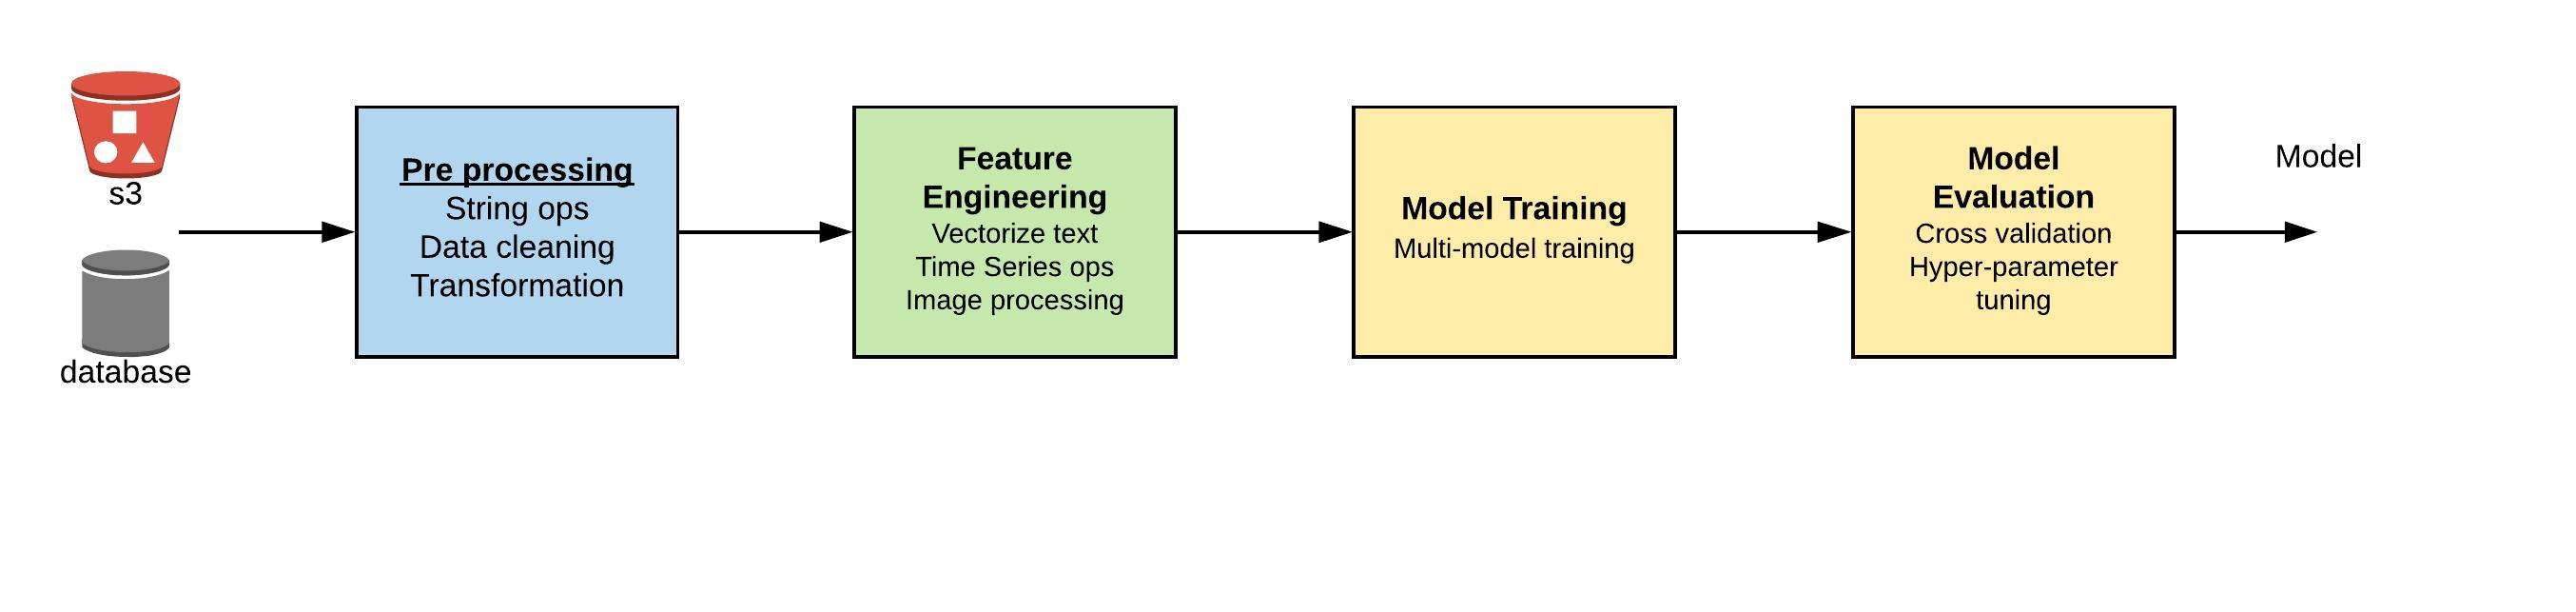 ML pipelines - dask uses cases in ML (1)